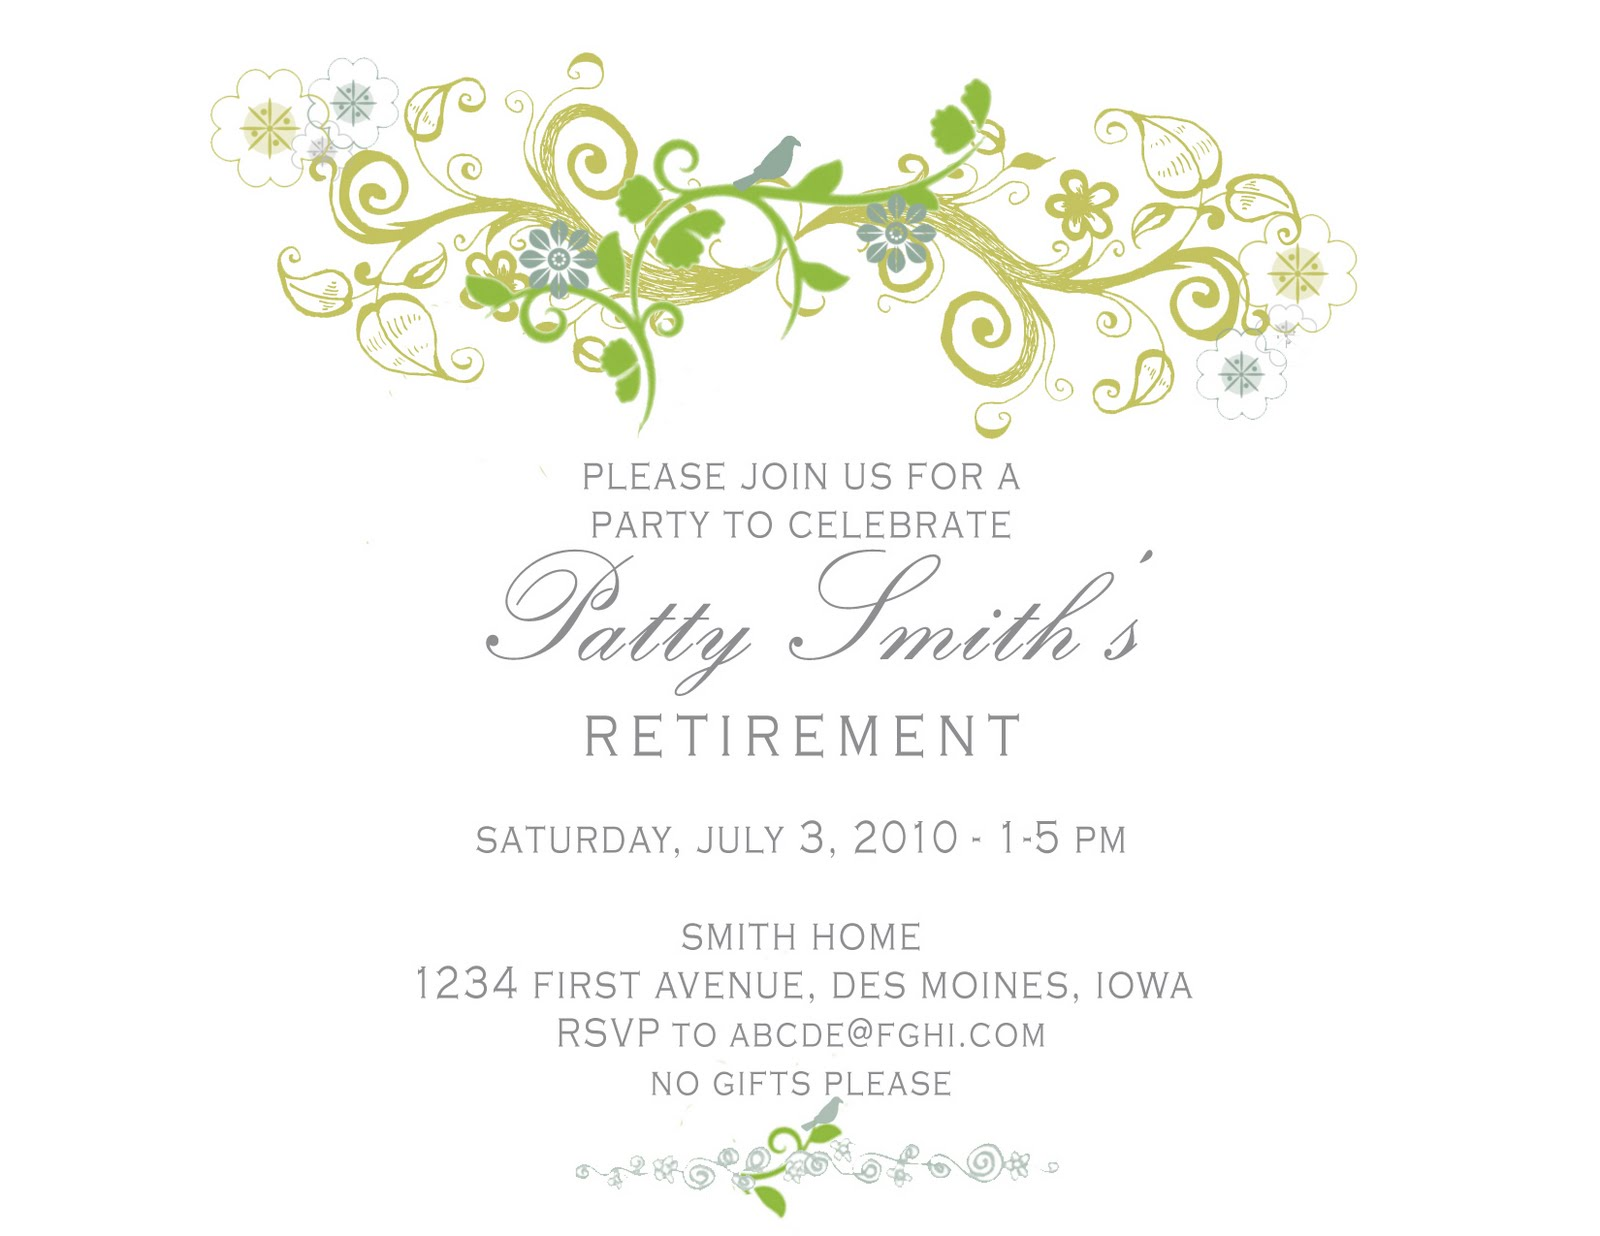 iDesign: a Retirement Party Invitation